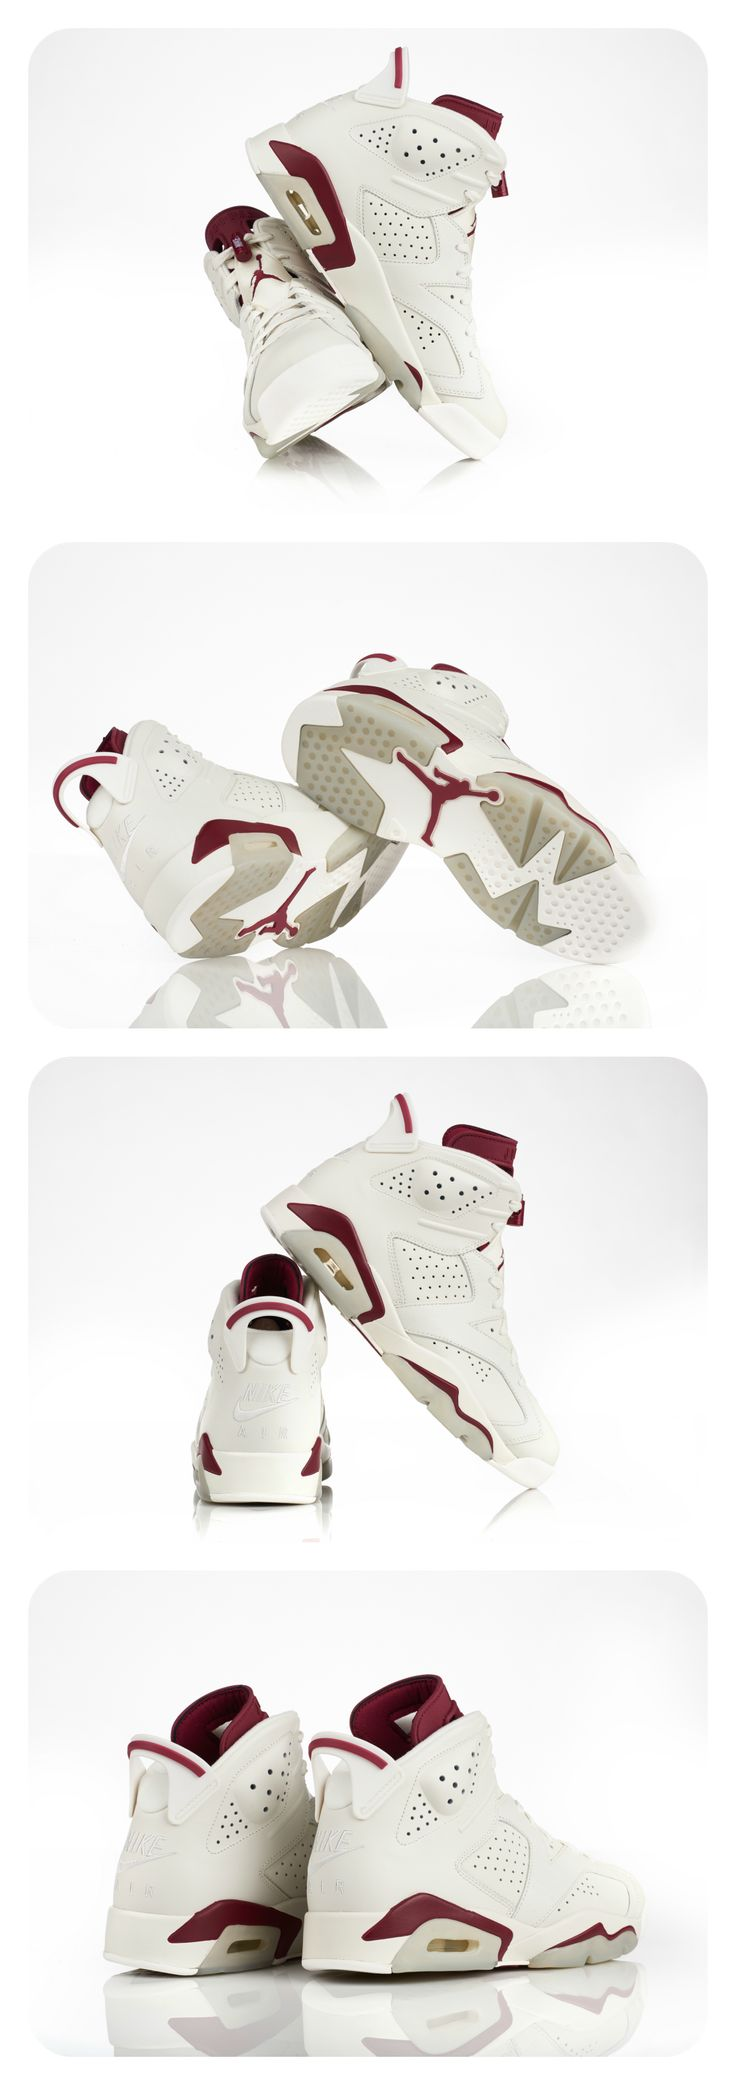 Happy Monday! We've restocked this fan-favorite Jordan Retro 6. Happy Monday indeed.